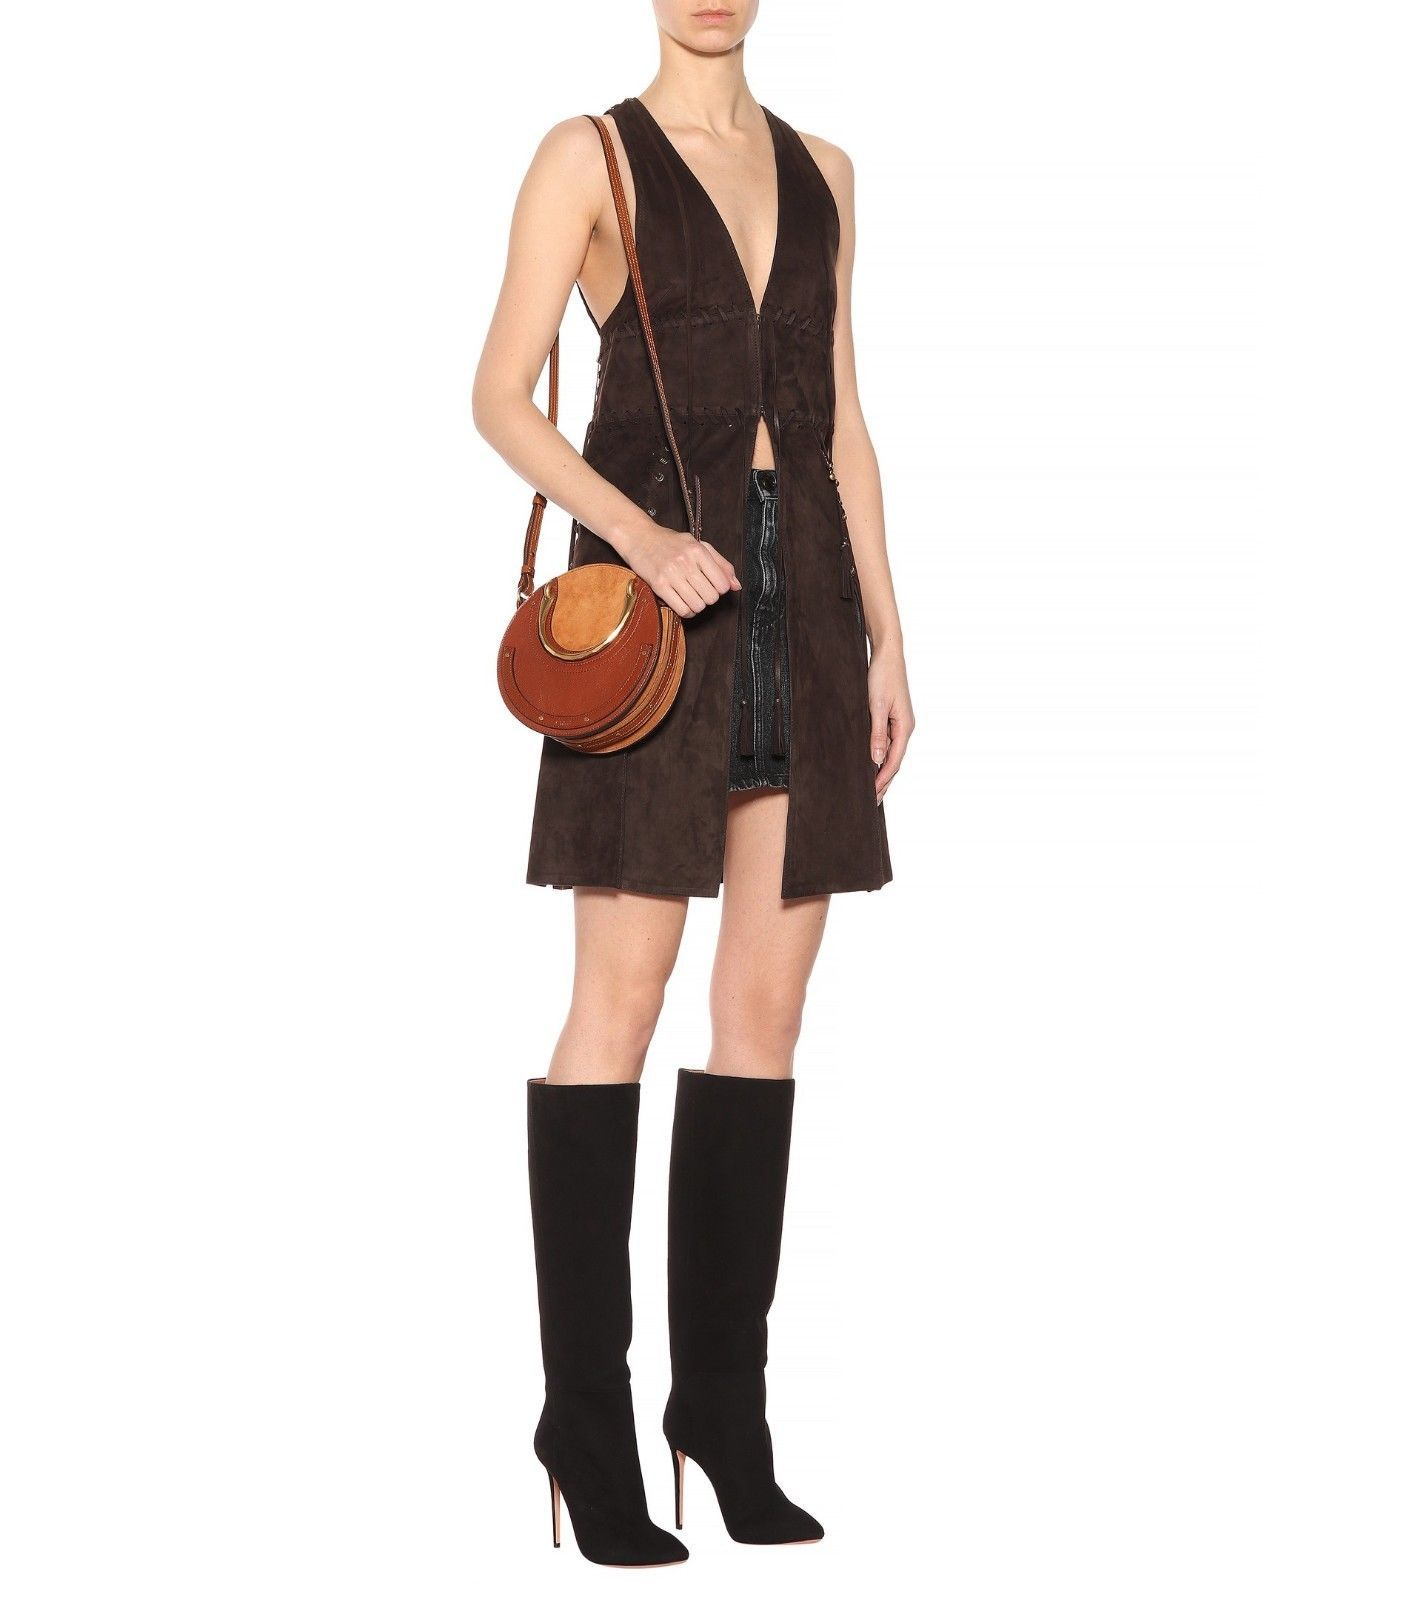 New Smooth Chocolate-hued Suede Women\s Soft Lambskin Hot Mini Dress